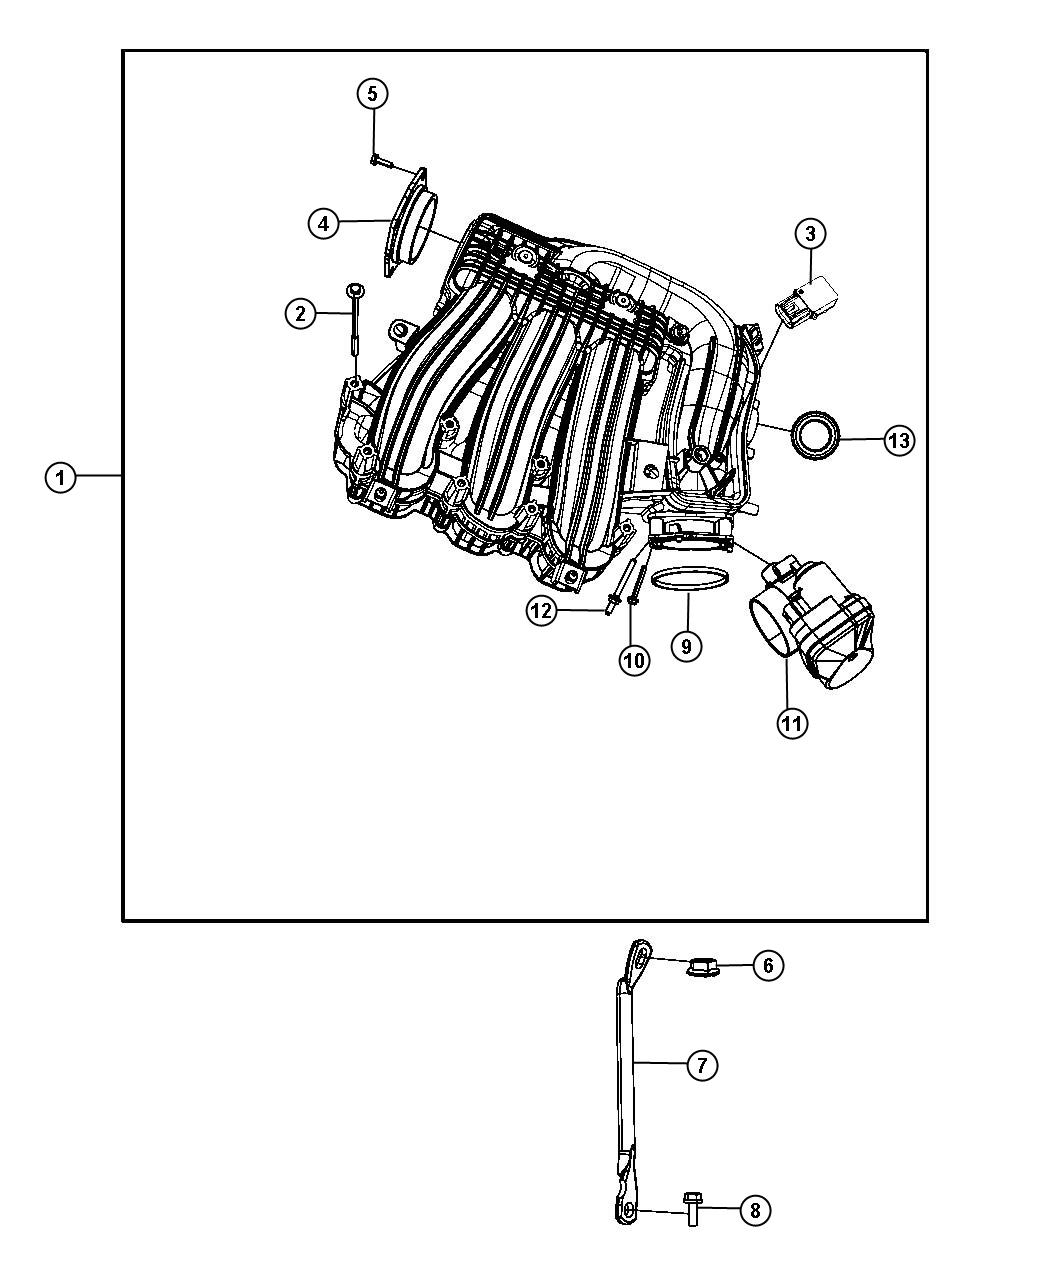 Klr 650 Engine Parts Diagram, Klr, Free Engine Image For